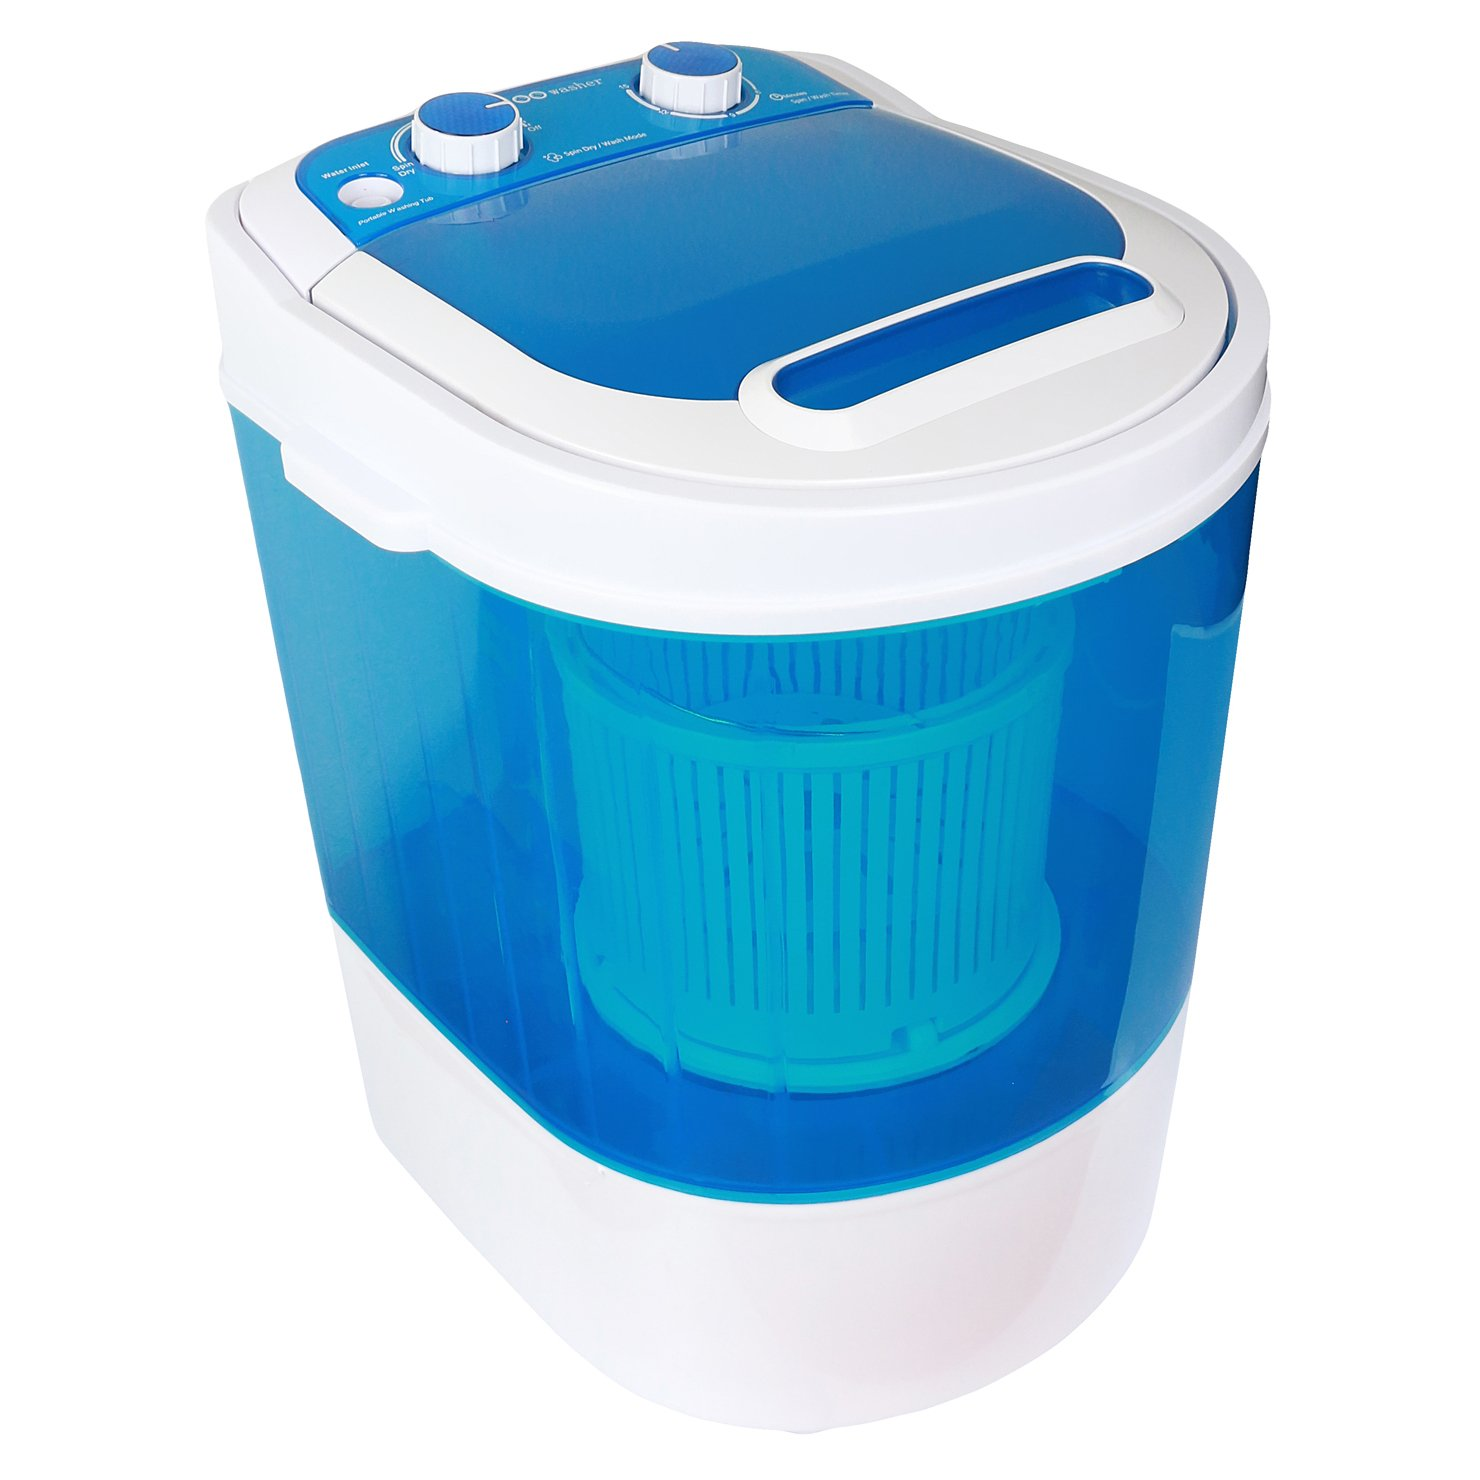 Woowasher Mini Portable Washing Machine Spin Dry 6 6 Lbs